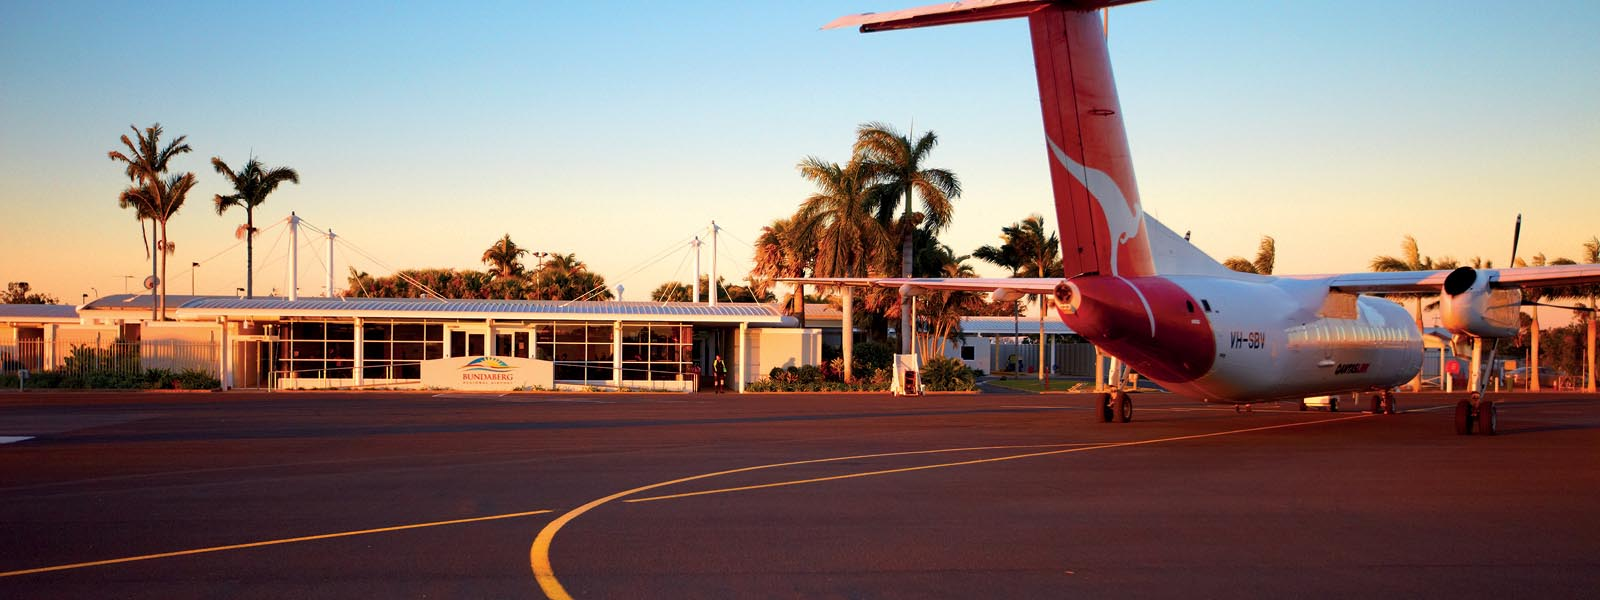 Qantas plane at bundaberg airport at sunset